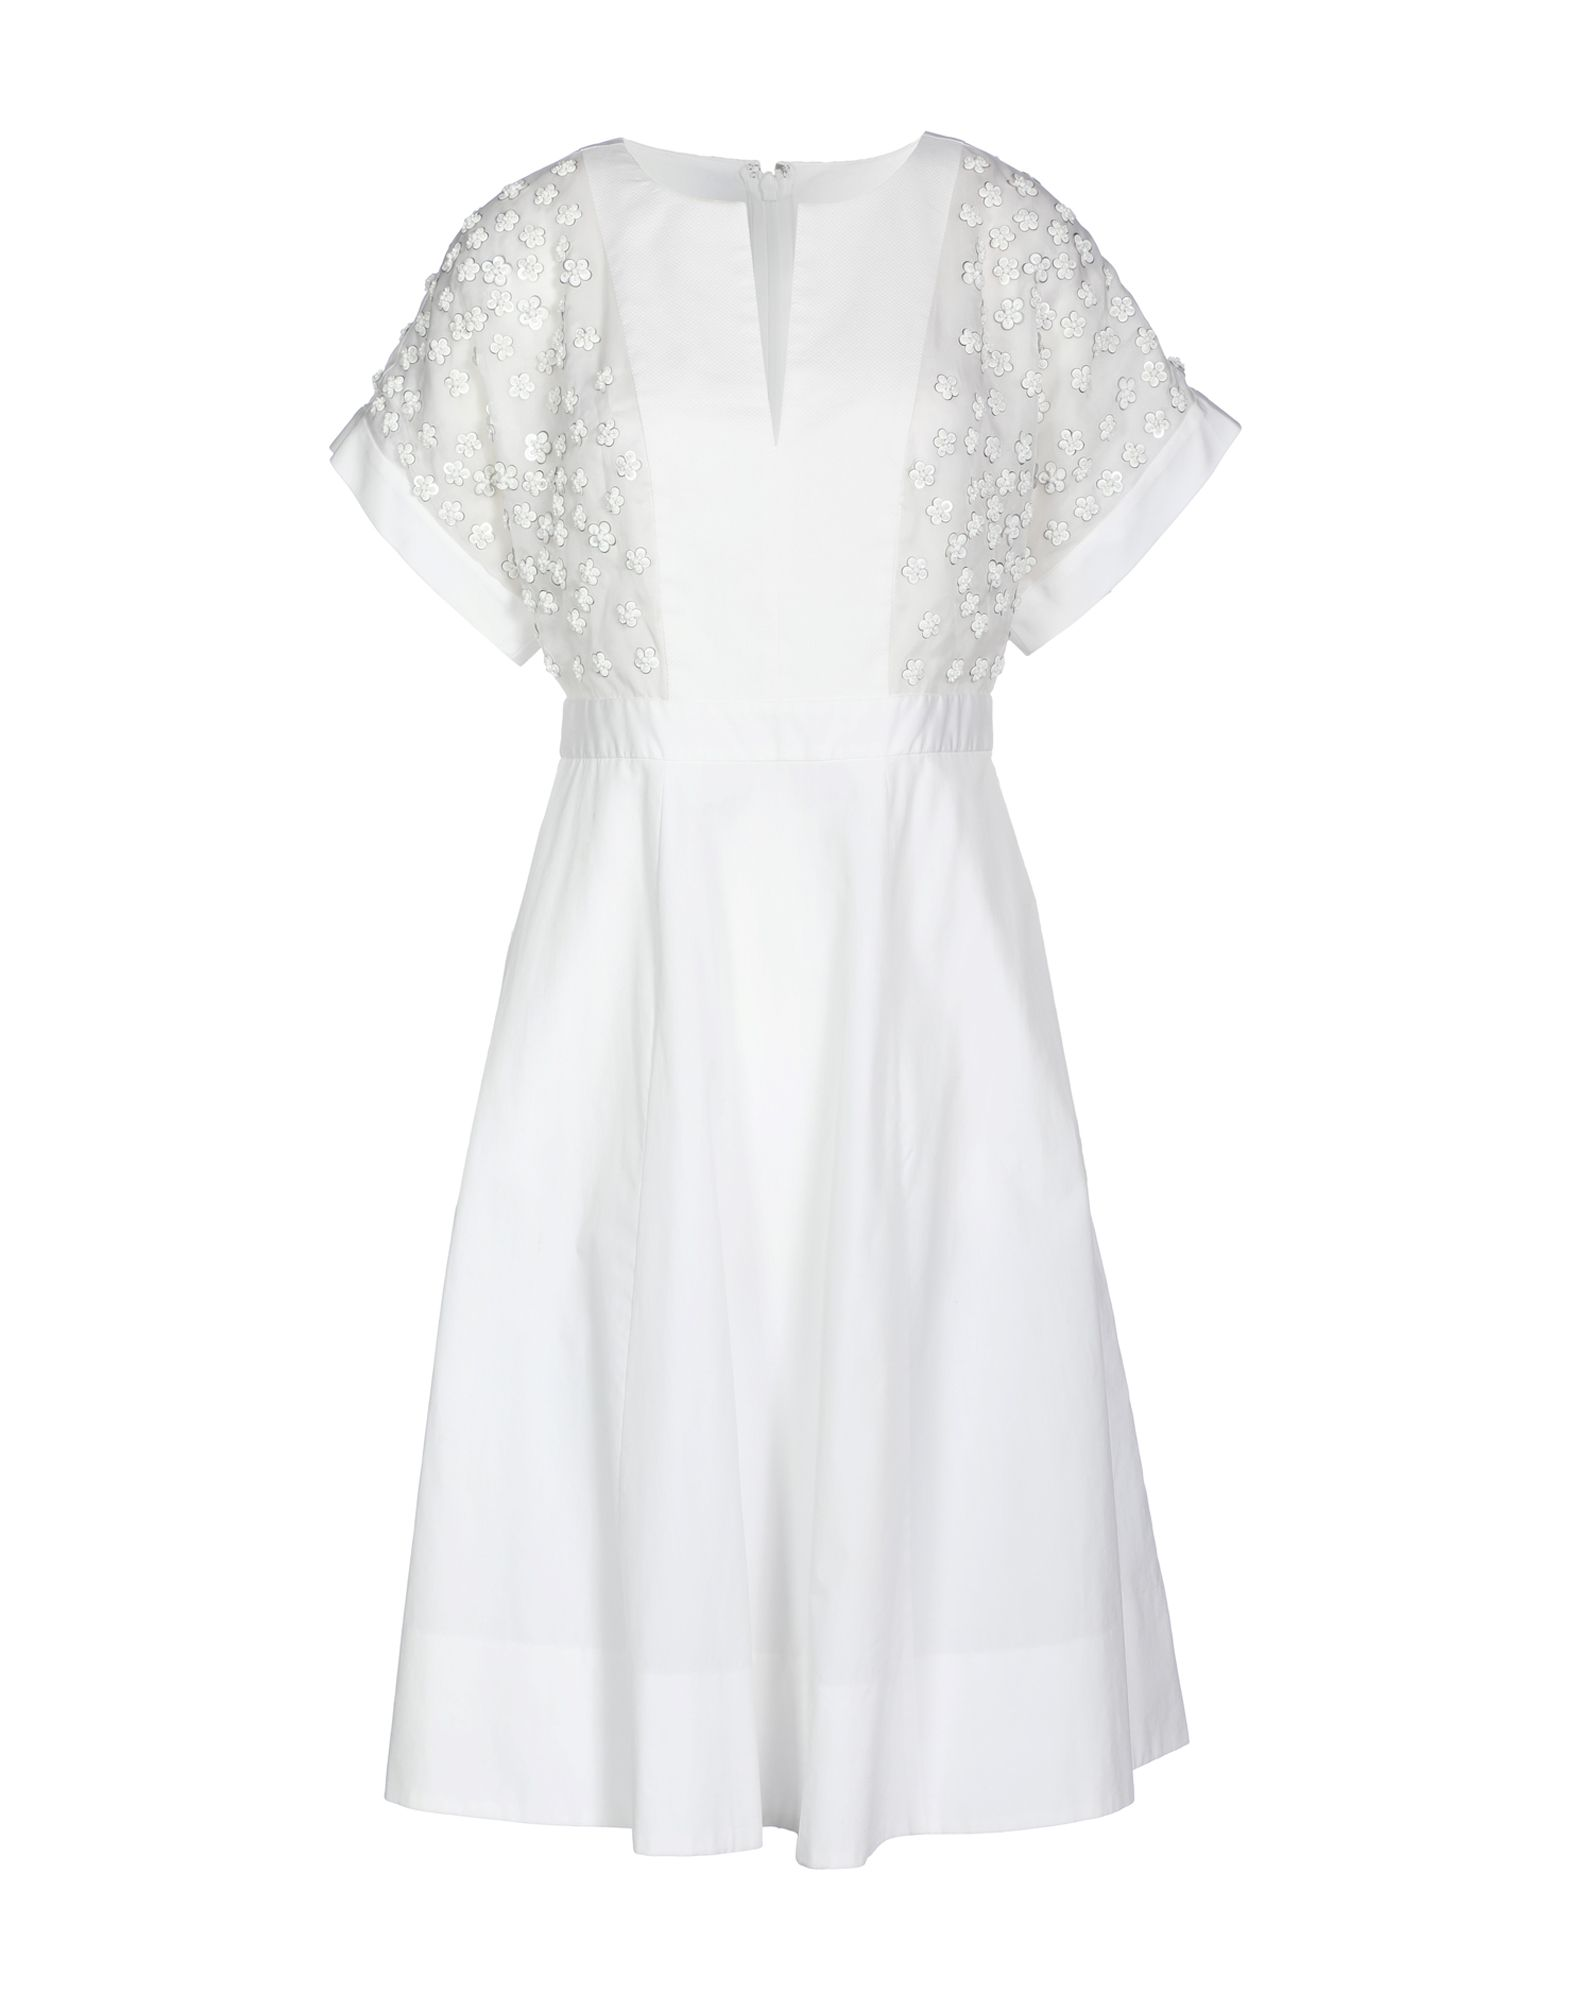 J.CREW Knee-length dresses. plain weave, organza, sequined, beaded, basic solid color, short sleeves, fully lined, hook-and-bar, zip, no pockets, deep neckline, dress. 100% Cotton